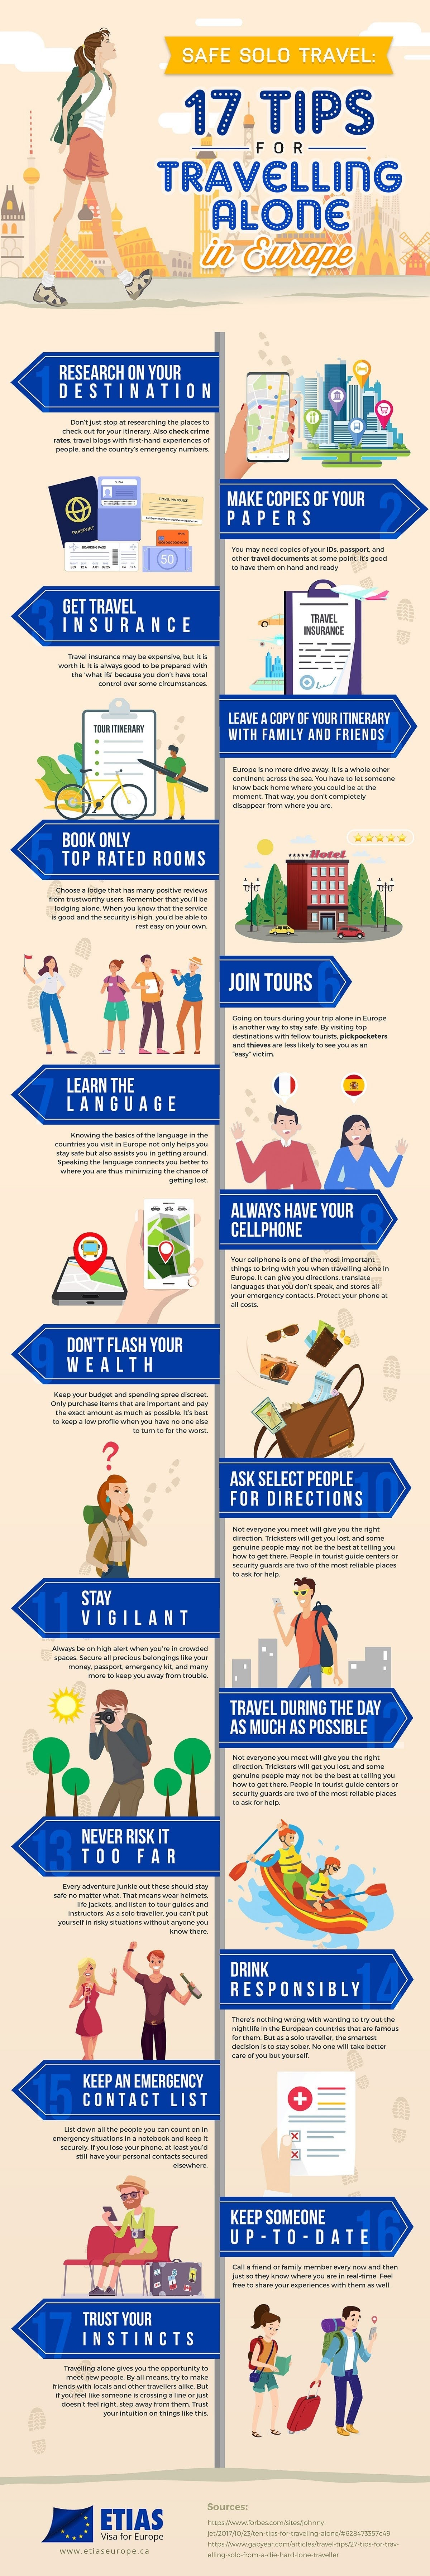 17 Cross-Country Safety Tips for Travelling Alone in Europe #infographic